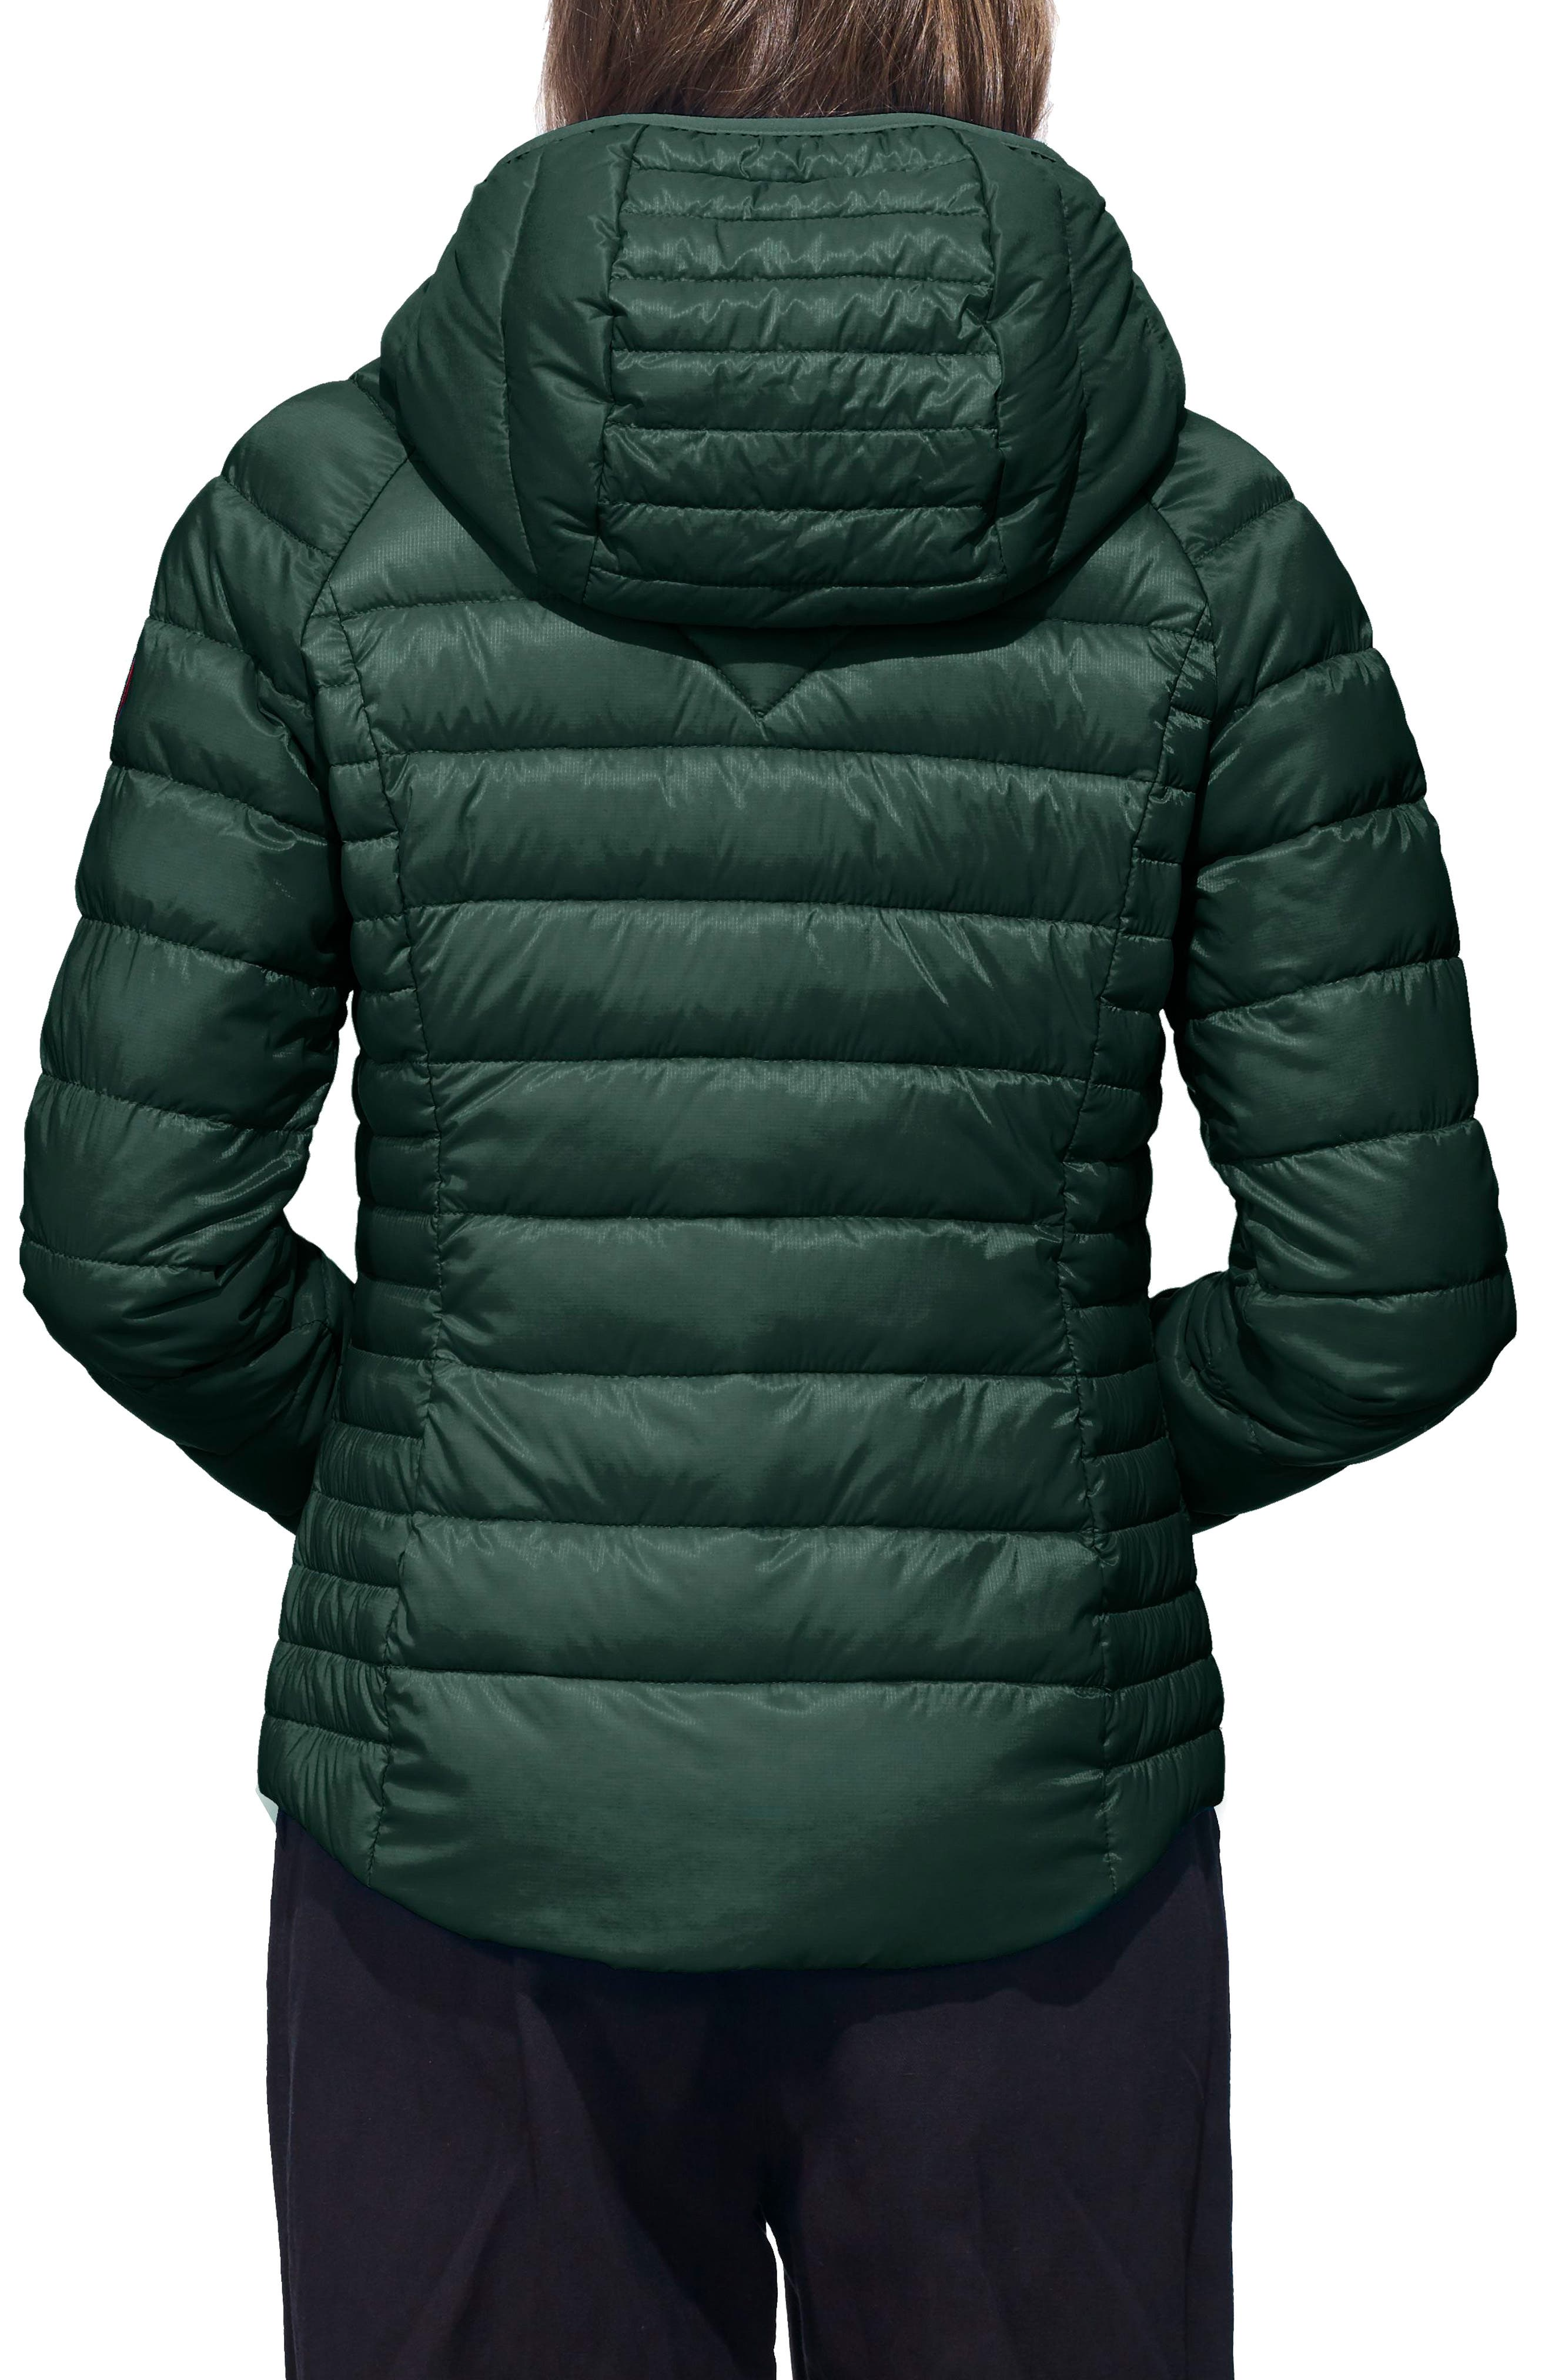 'Brookvale' Packable Hooded Quilted Down Jacket,                             Alternate thumbnail 2, color,                             SPRUCE/BLACK